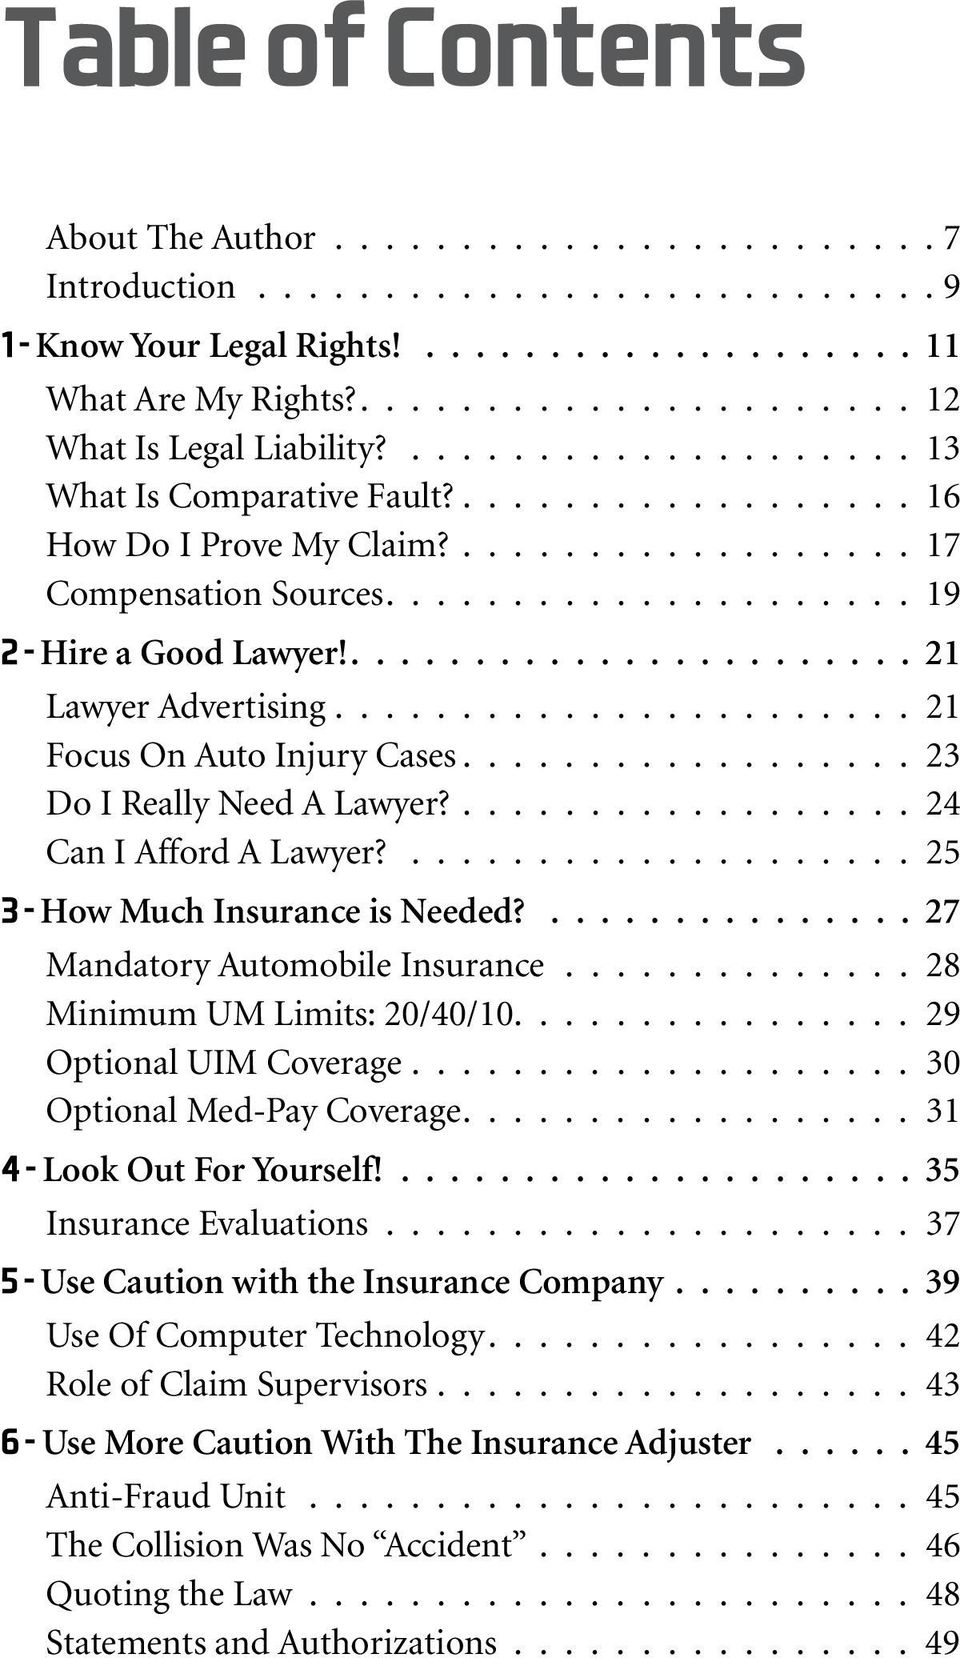 .................... 19 2 - Hire a Good Lawyer!....................... 21 Lawyer Advertising....................... 21 Focus On Auto Injury Cases.................. 23 Do I Really Need A Lawyer?